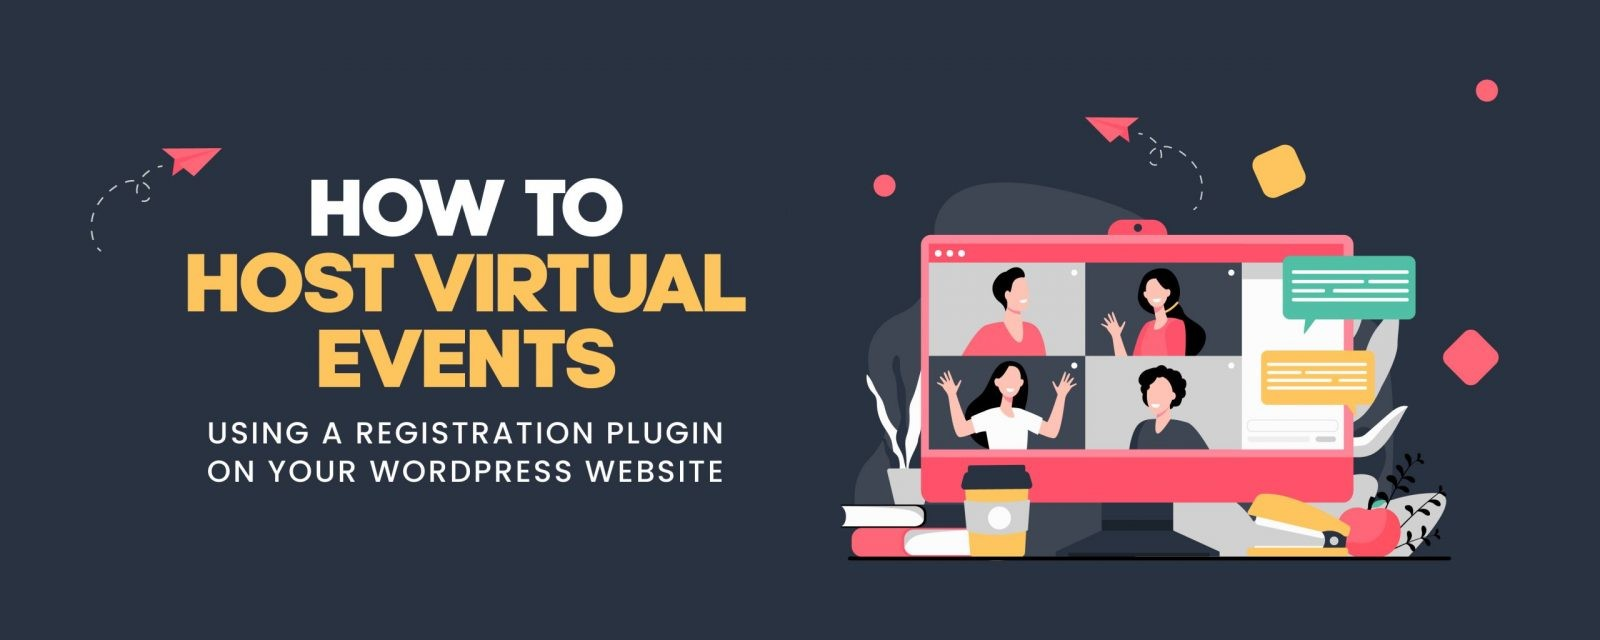 How to Host Virtual Events Using a Registration Plugin on Your WordPress Website